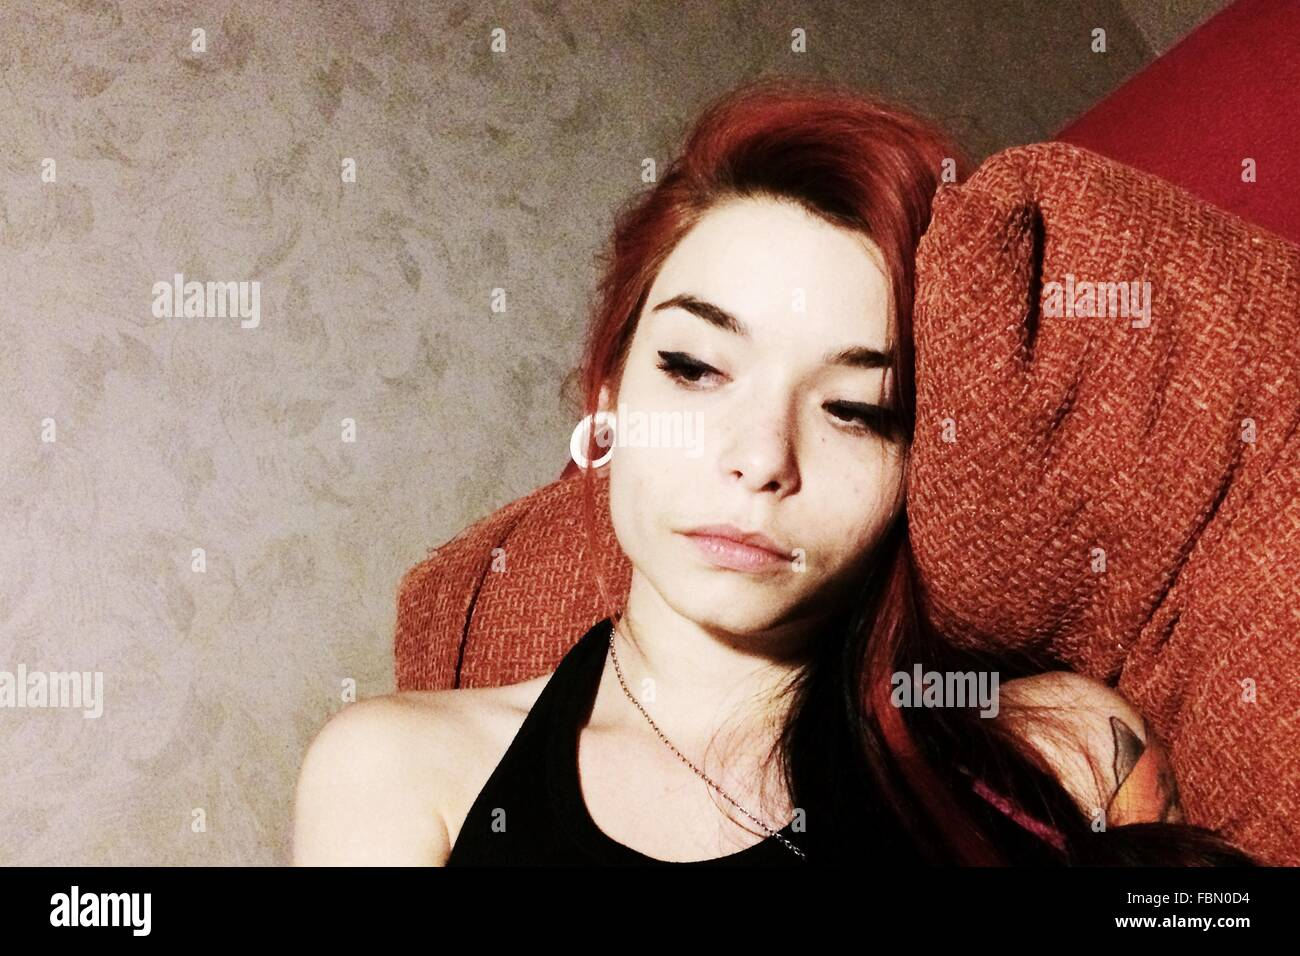 Thoughtful Young Woman Resting On Sofa - Stock Image